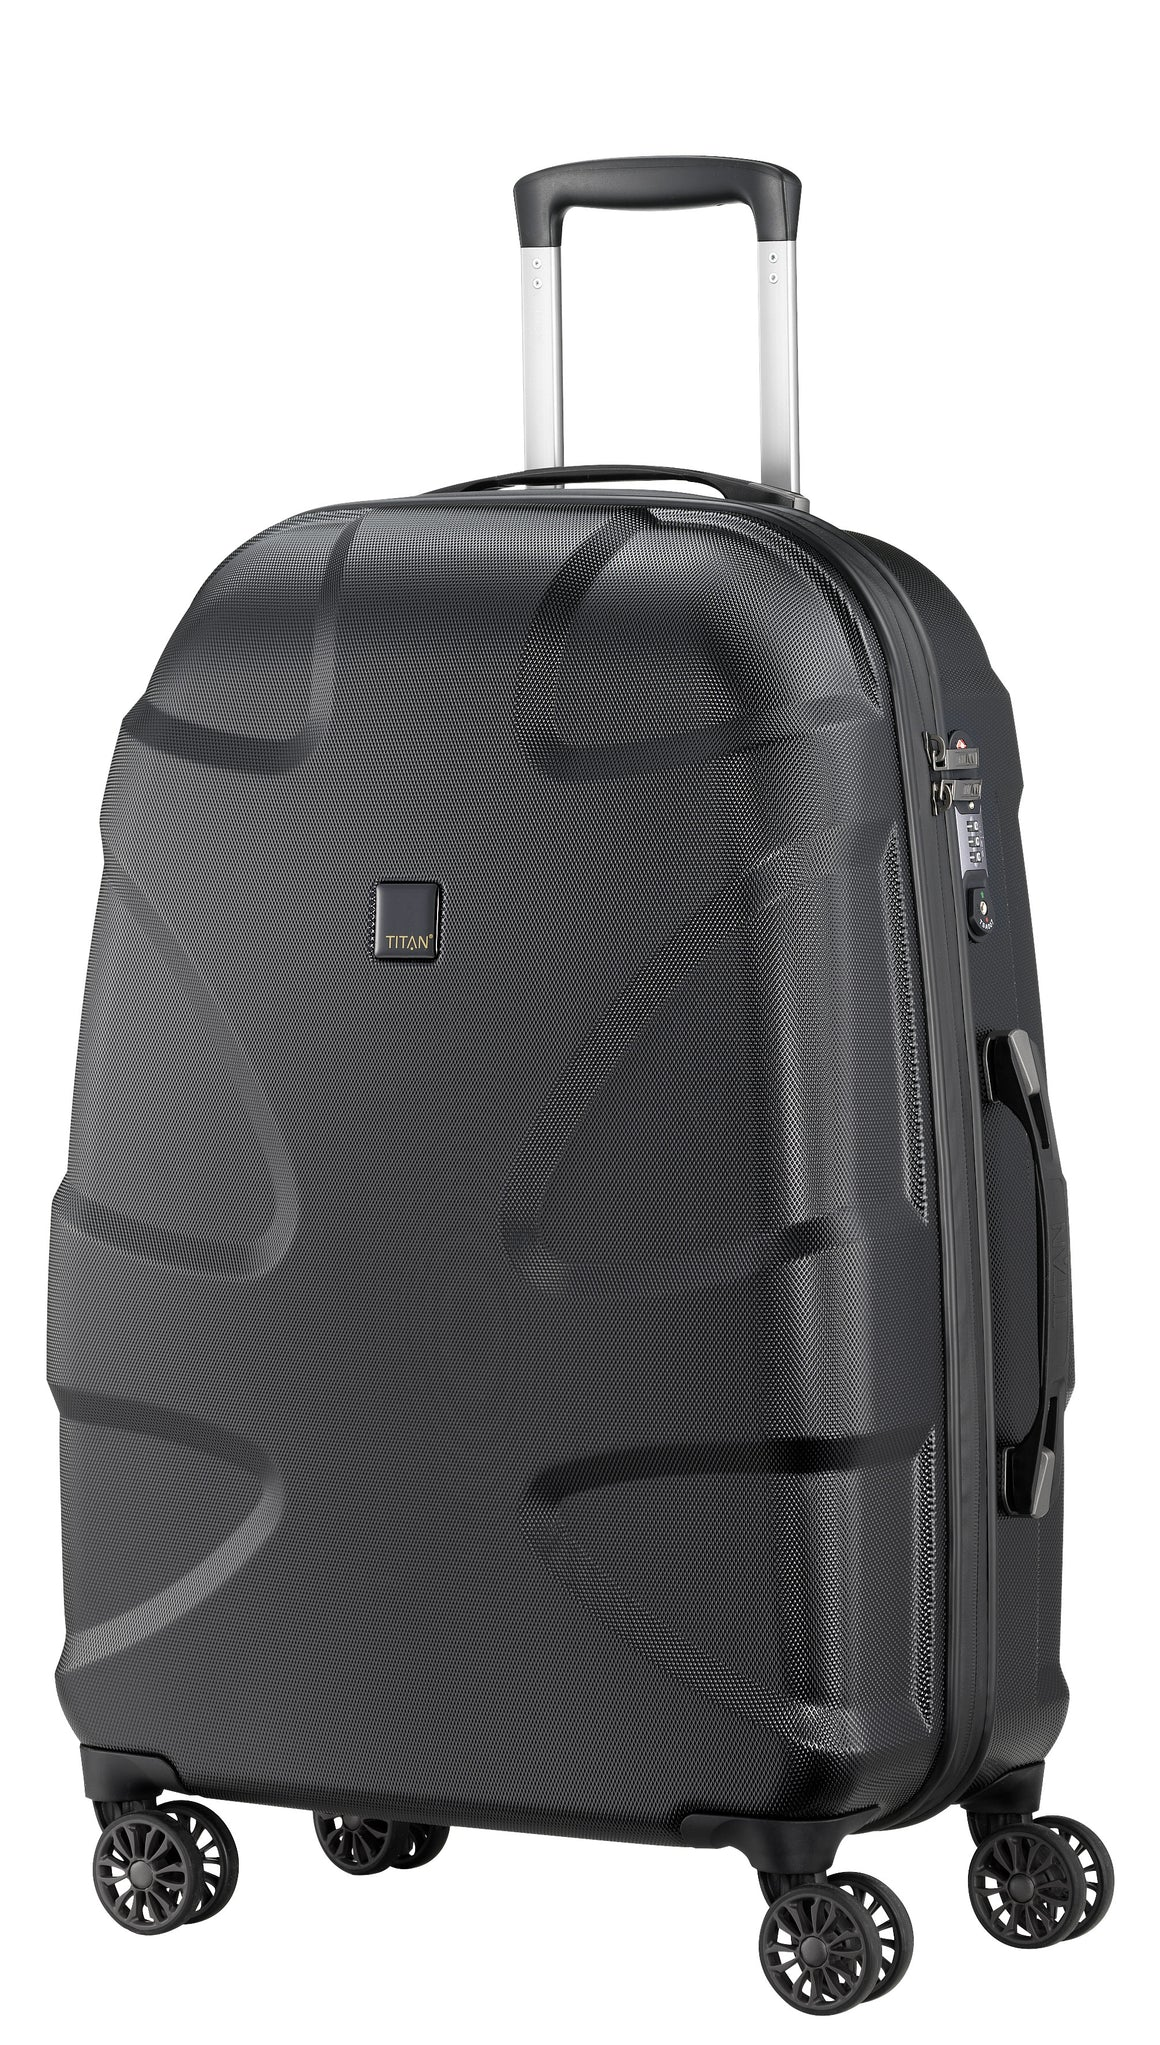 "Titan X2 28"" 4 Wheel Spinner Luggage Midnight Blue"